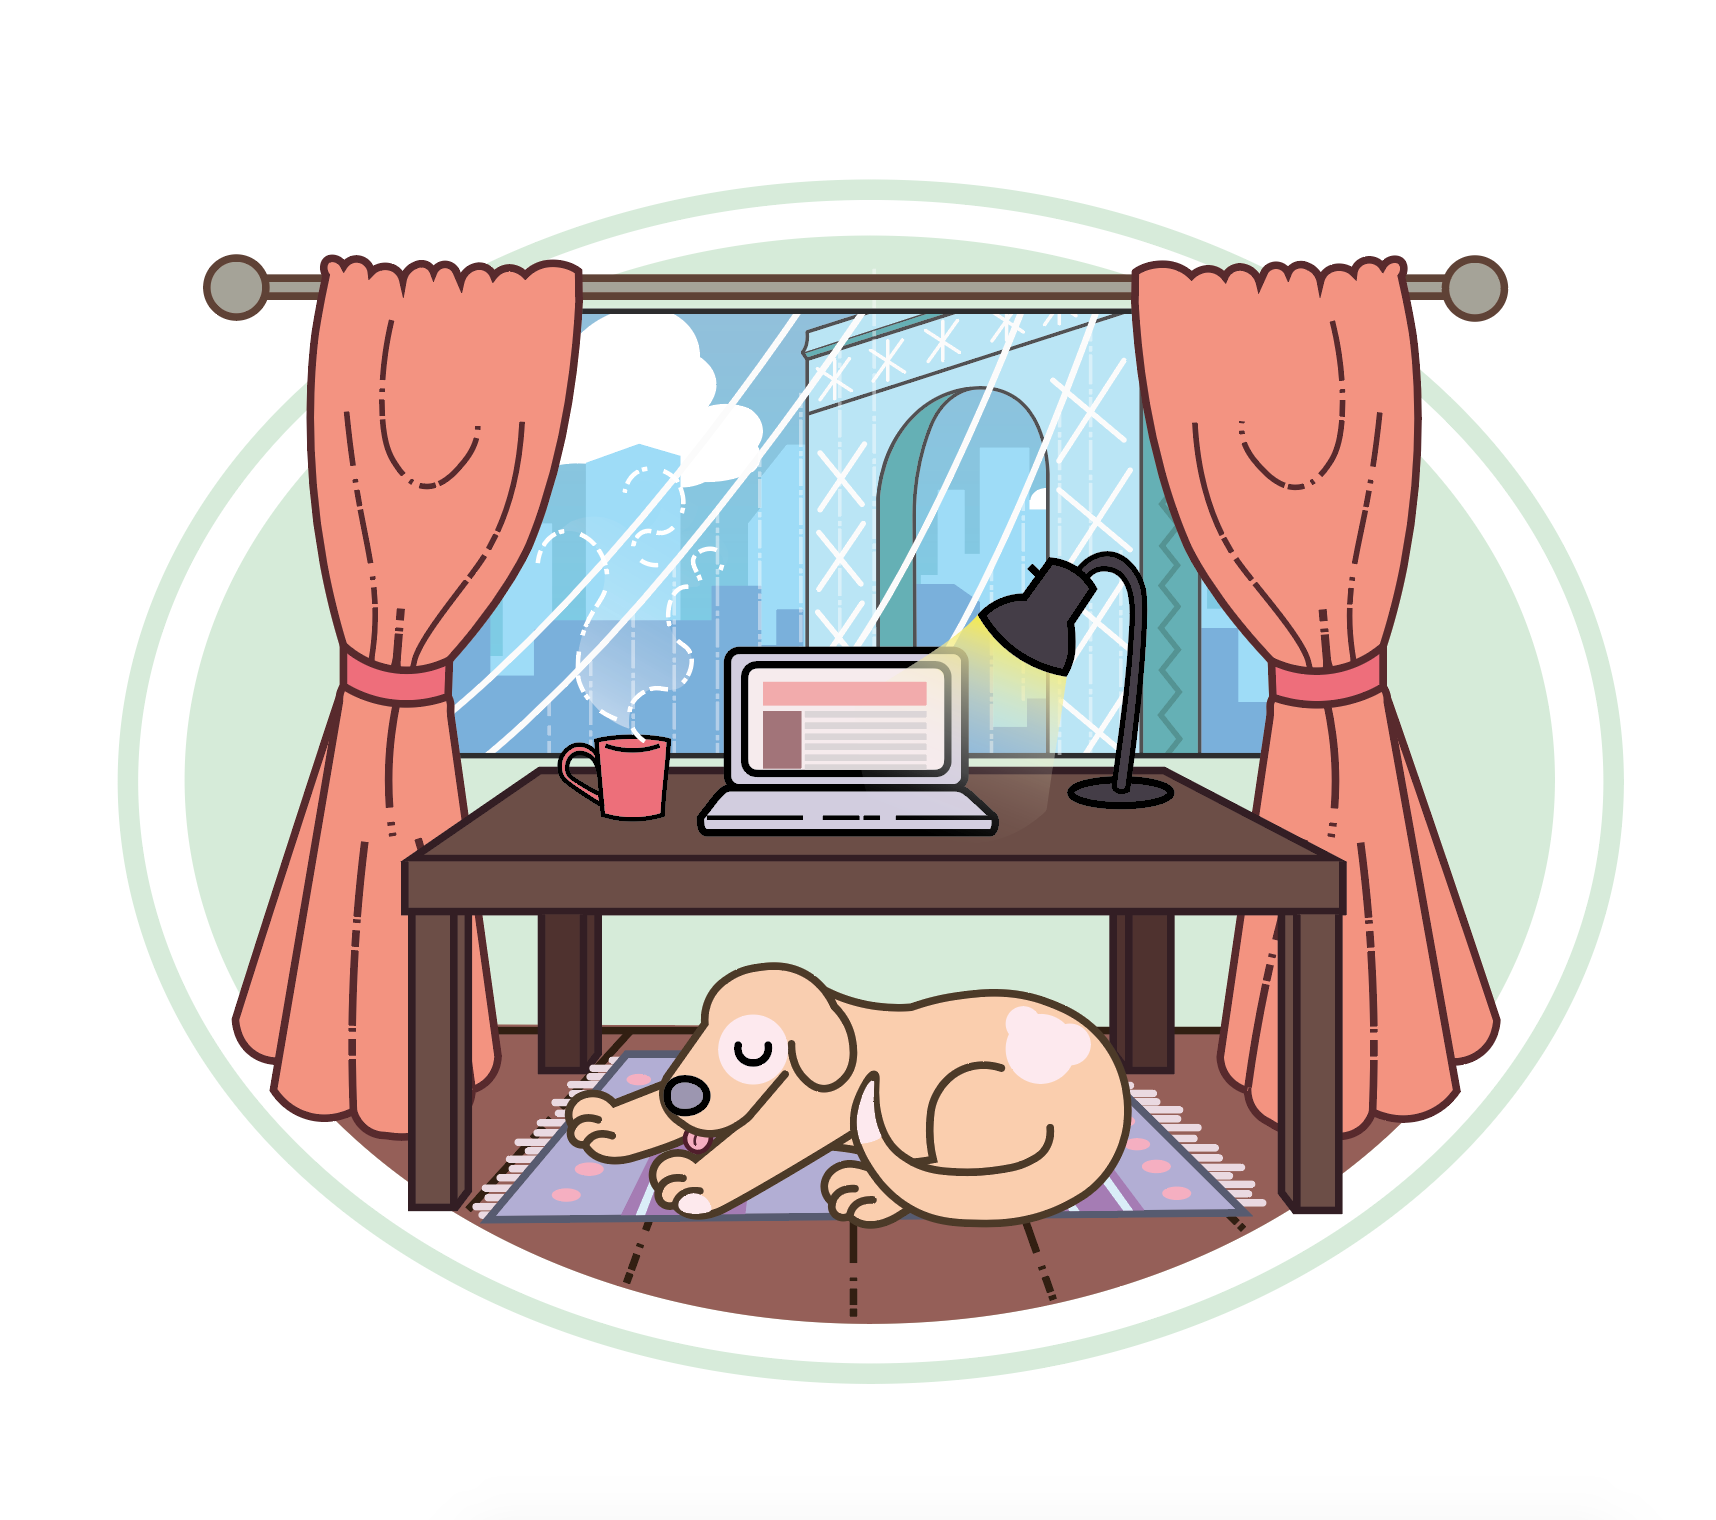 A illustration of an office space with a dog in it